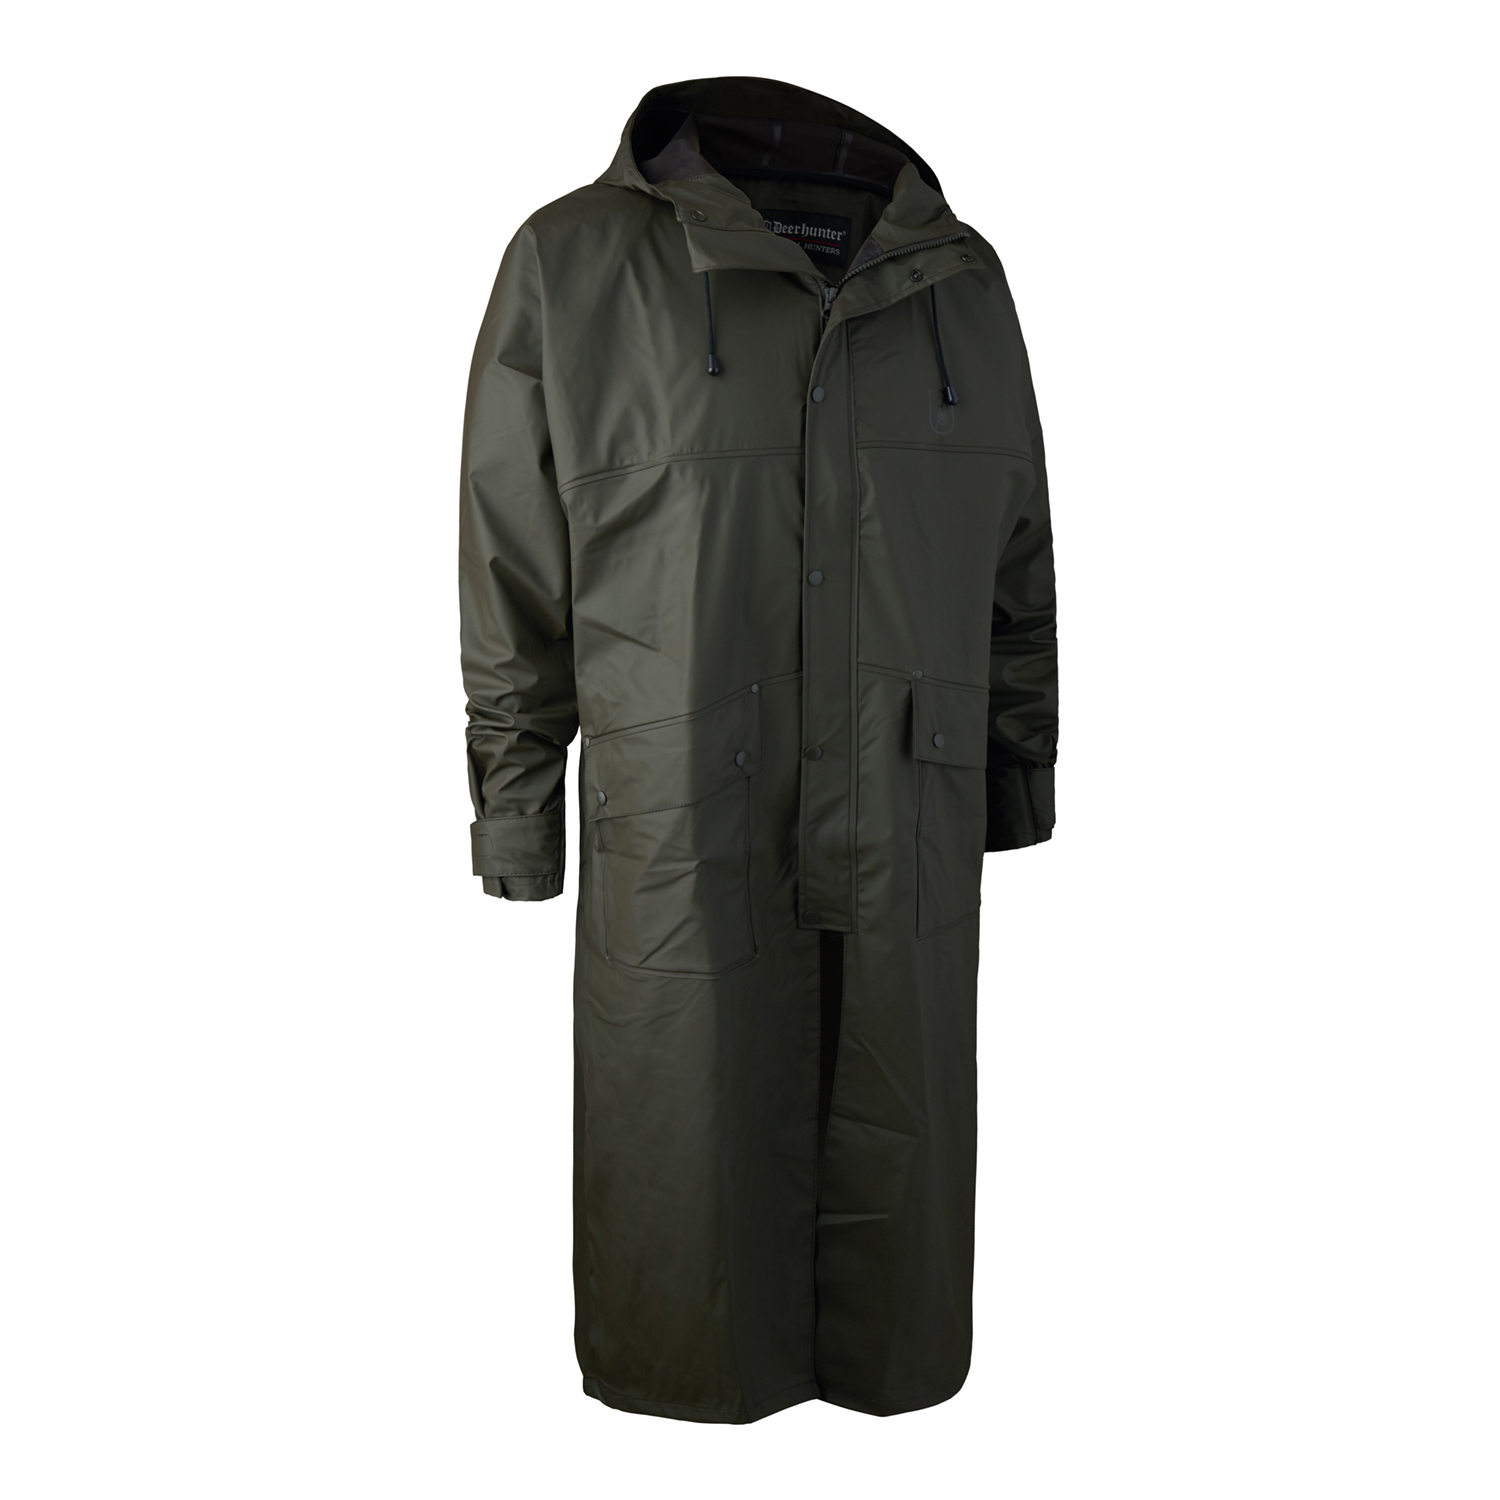 Jacheta Hurricane Raincoat Deerhunter